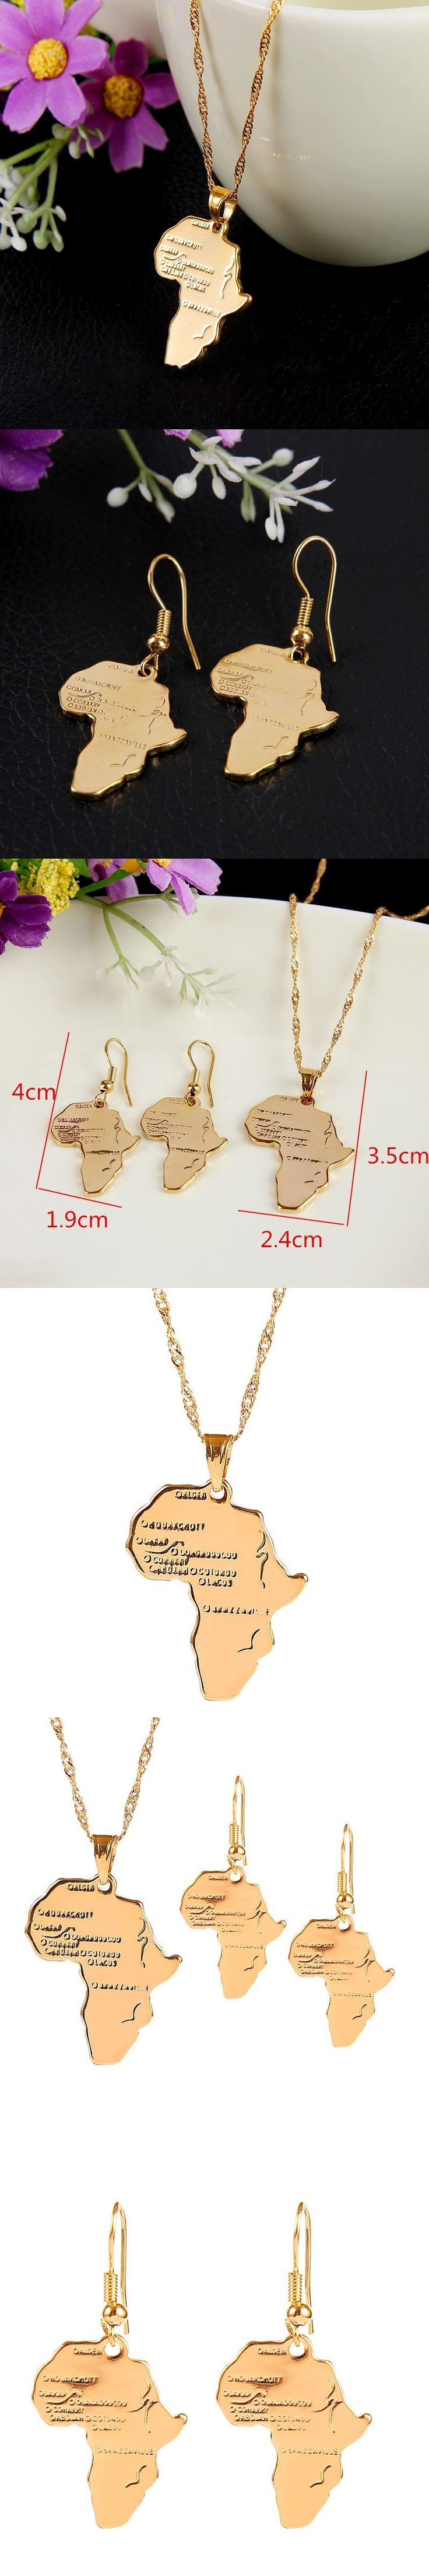 Africa Map Horn Of Africa%0A Bangrui Hiphop Africa Necklace Gift Gold Pendant  u     Chain Wholesale African  Map Men Women Trendy